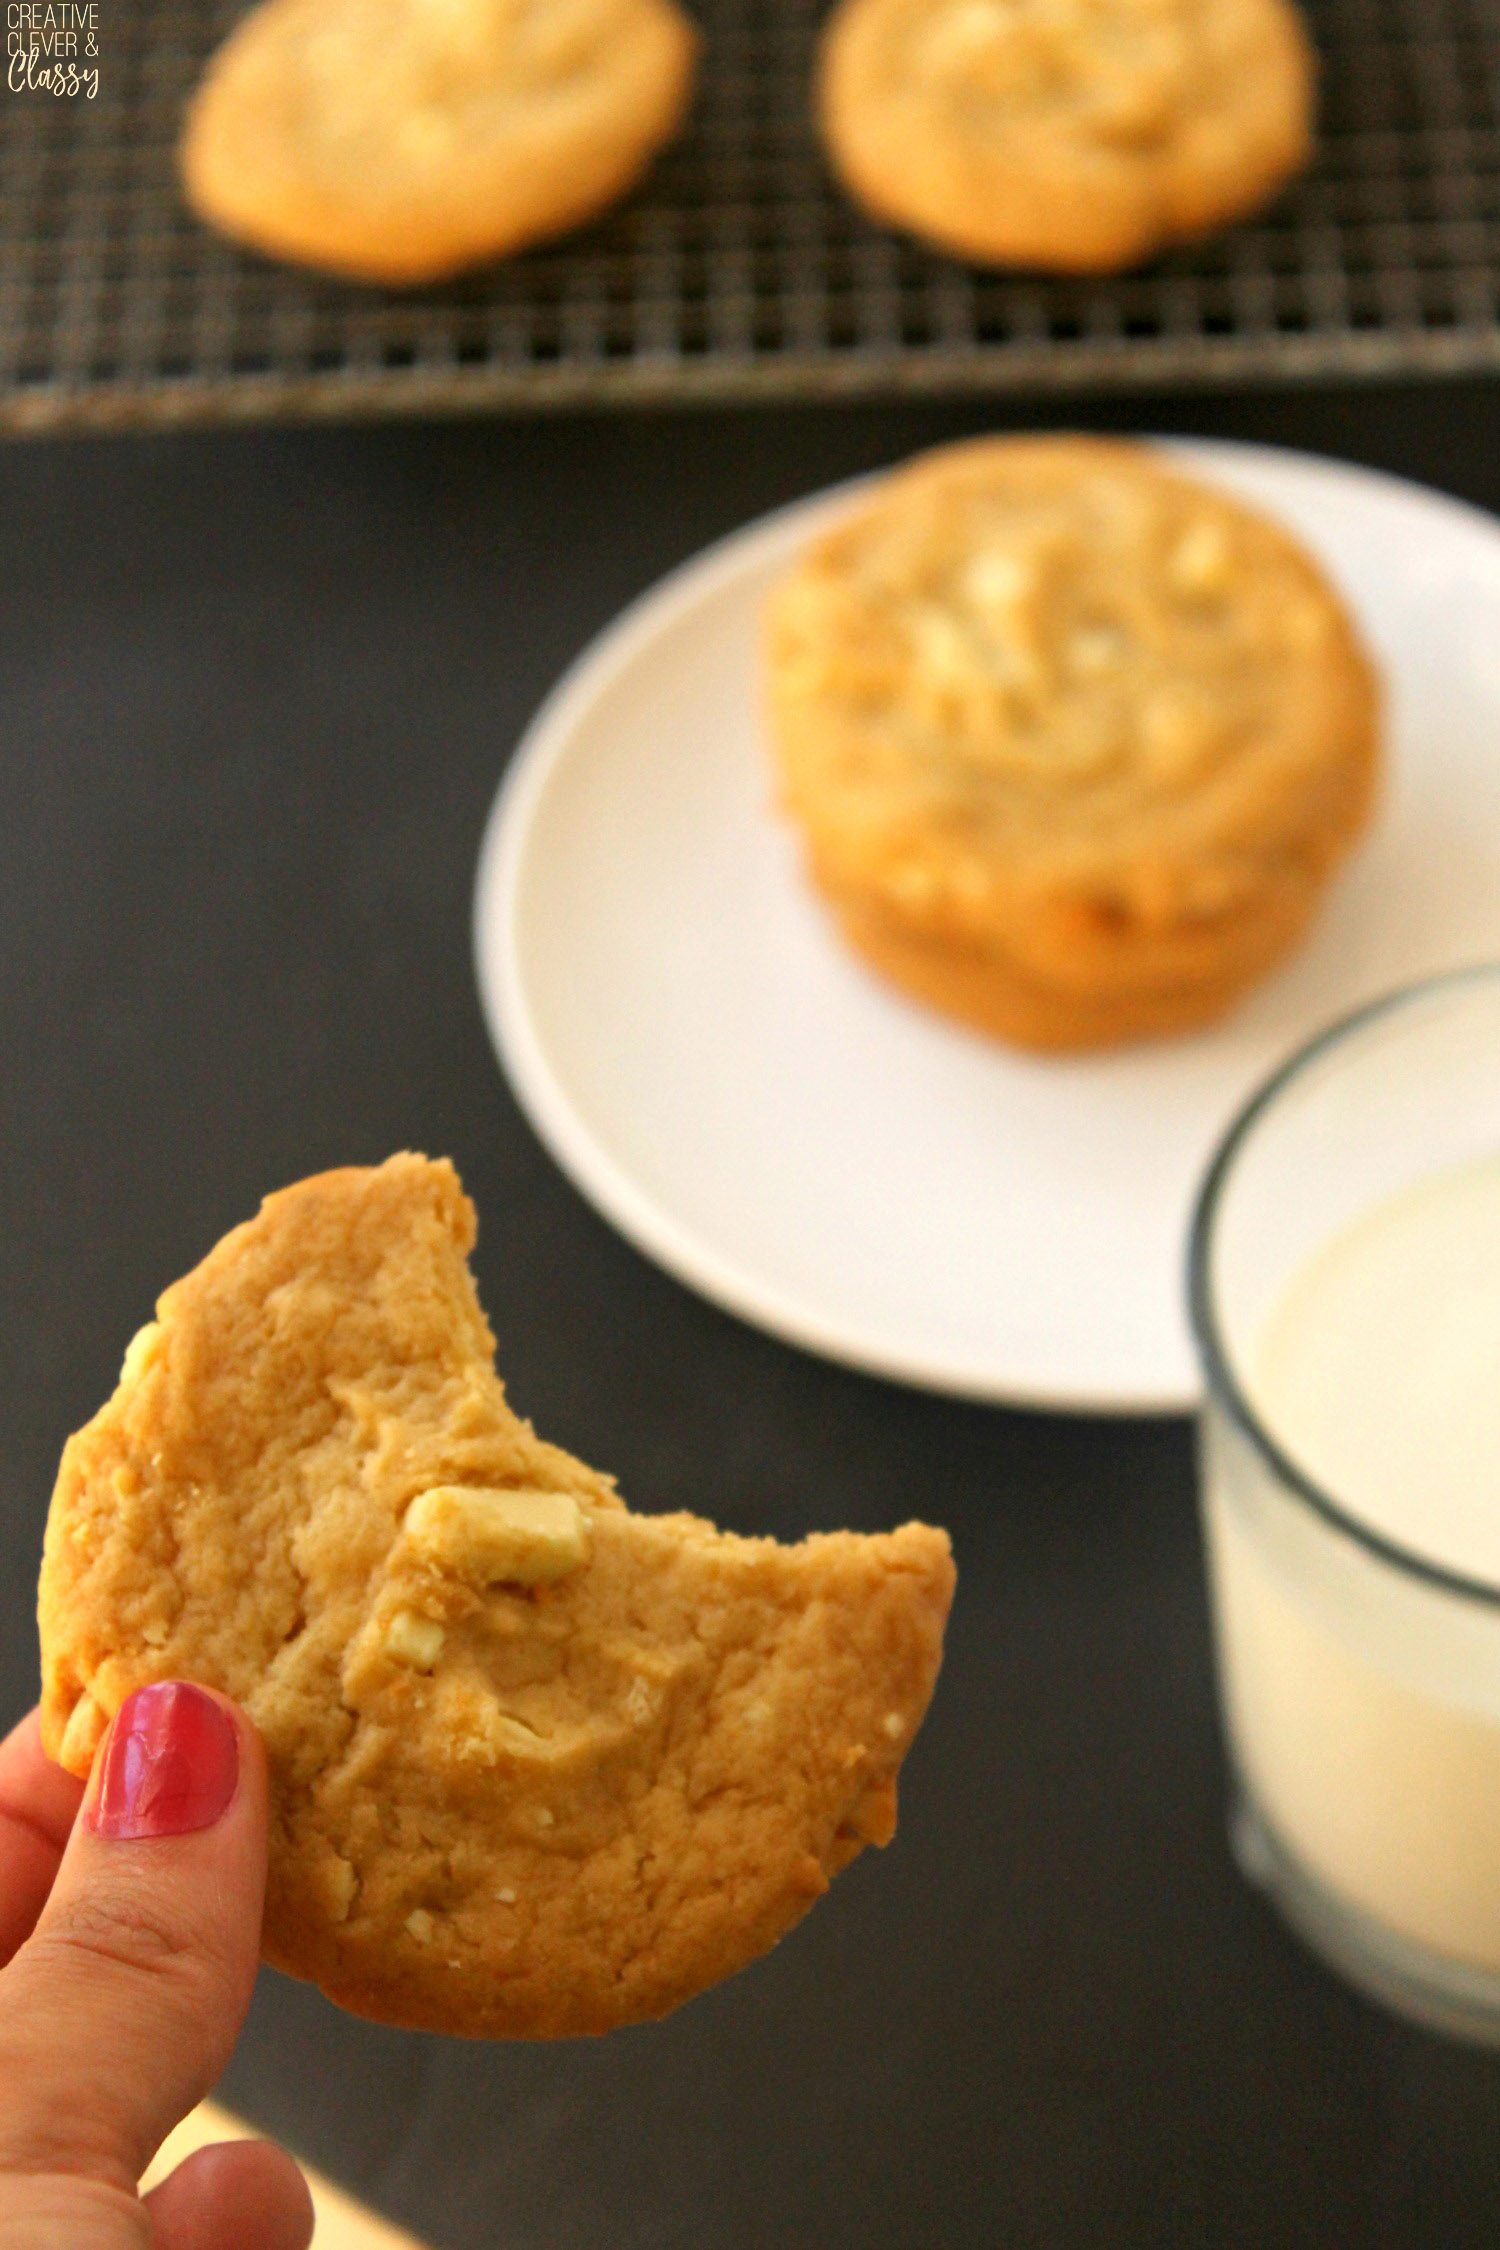 My favorite part of Christmas is making Christmas cookies! Try these delicious white chocolate macadamia nut cookies!